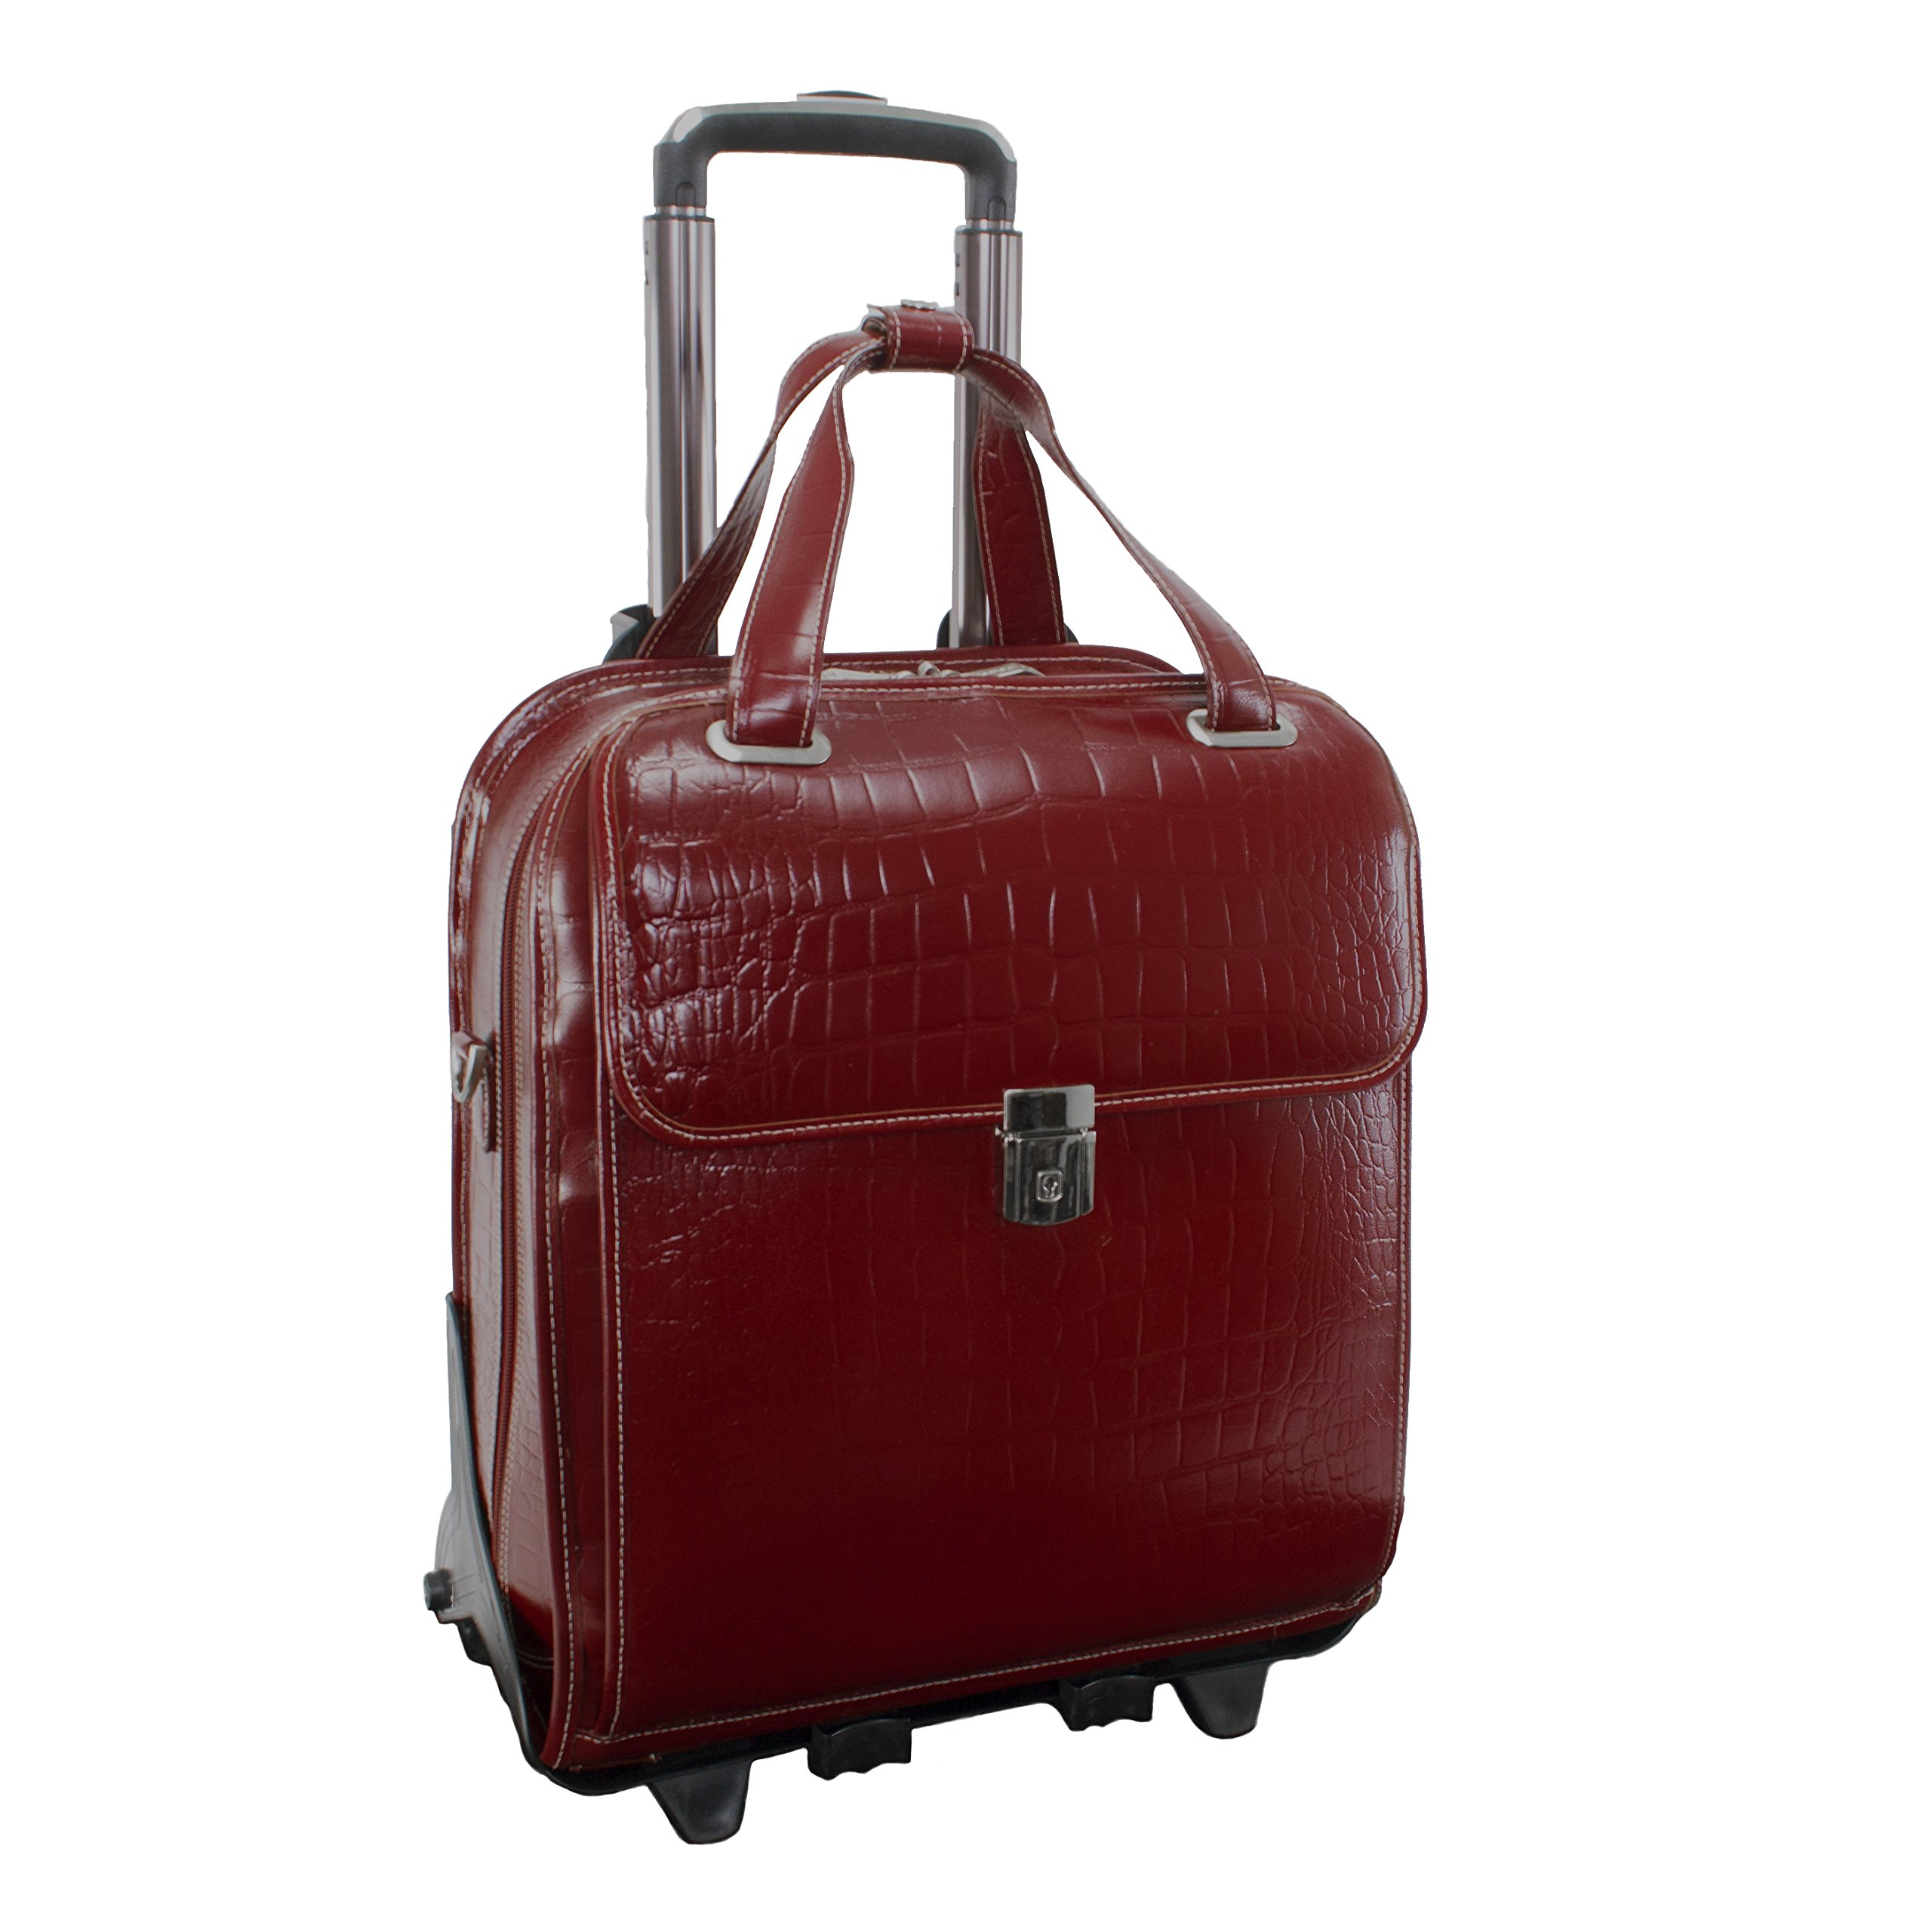 Siamod NOVEMBRE 35326 Red Leather Ladies' Detachable-Wheeled Laptop Case